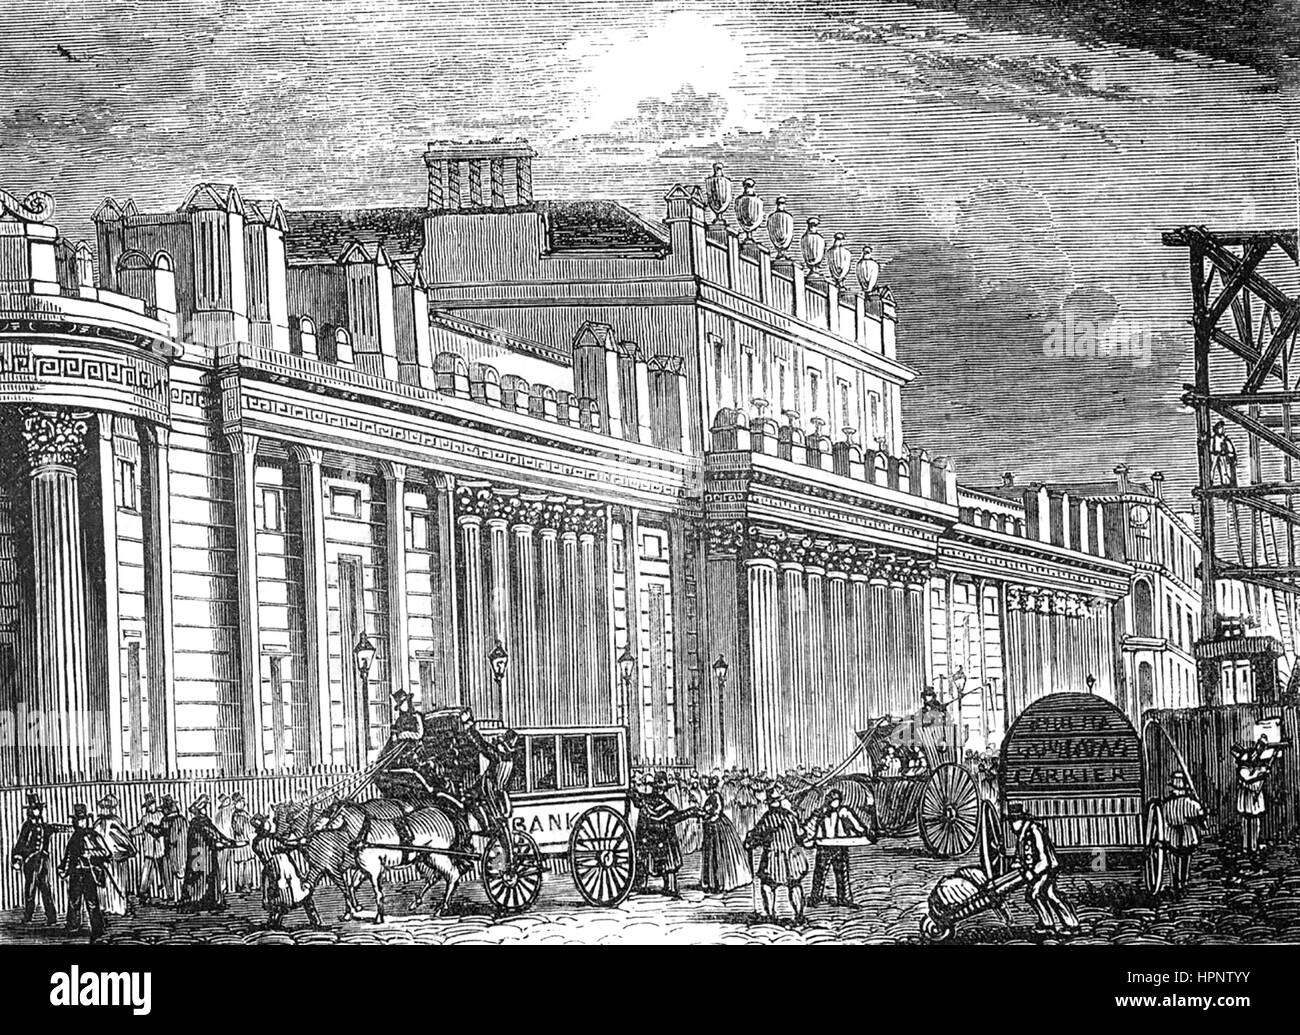 BANK OF ENGLAND building in Threadneedle Street about 1830, designed by Sir John Sloane - Stock Image